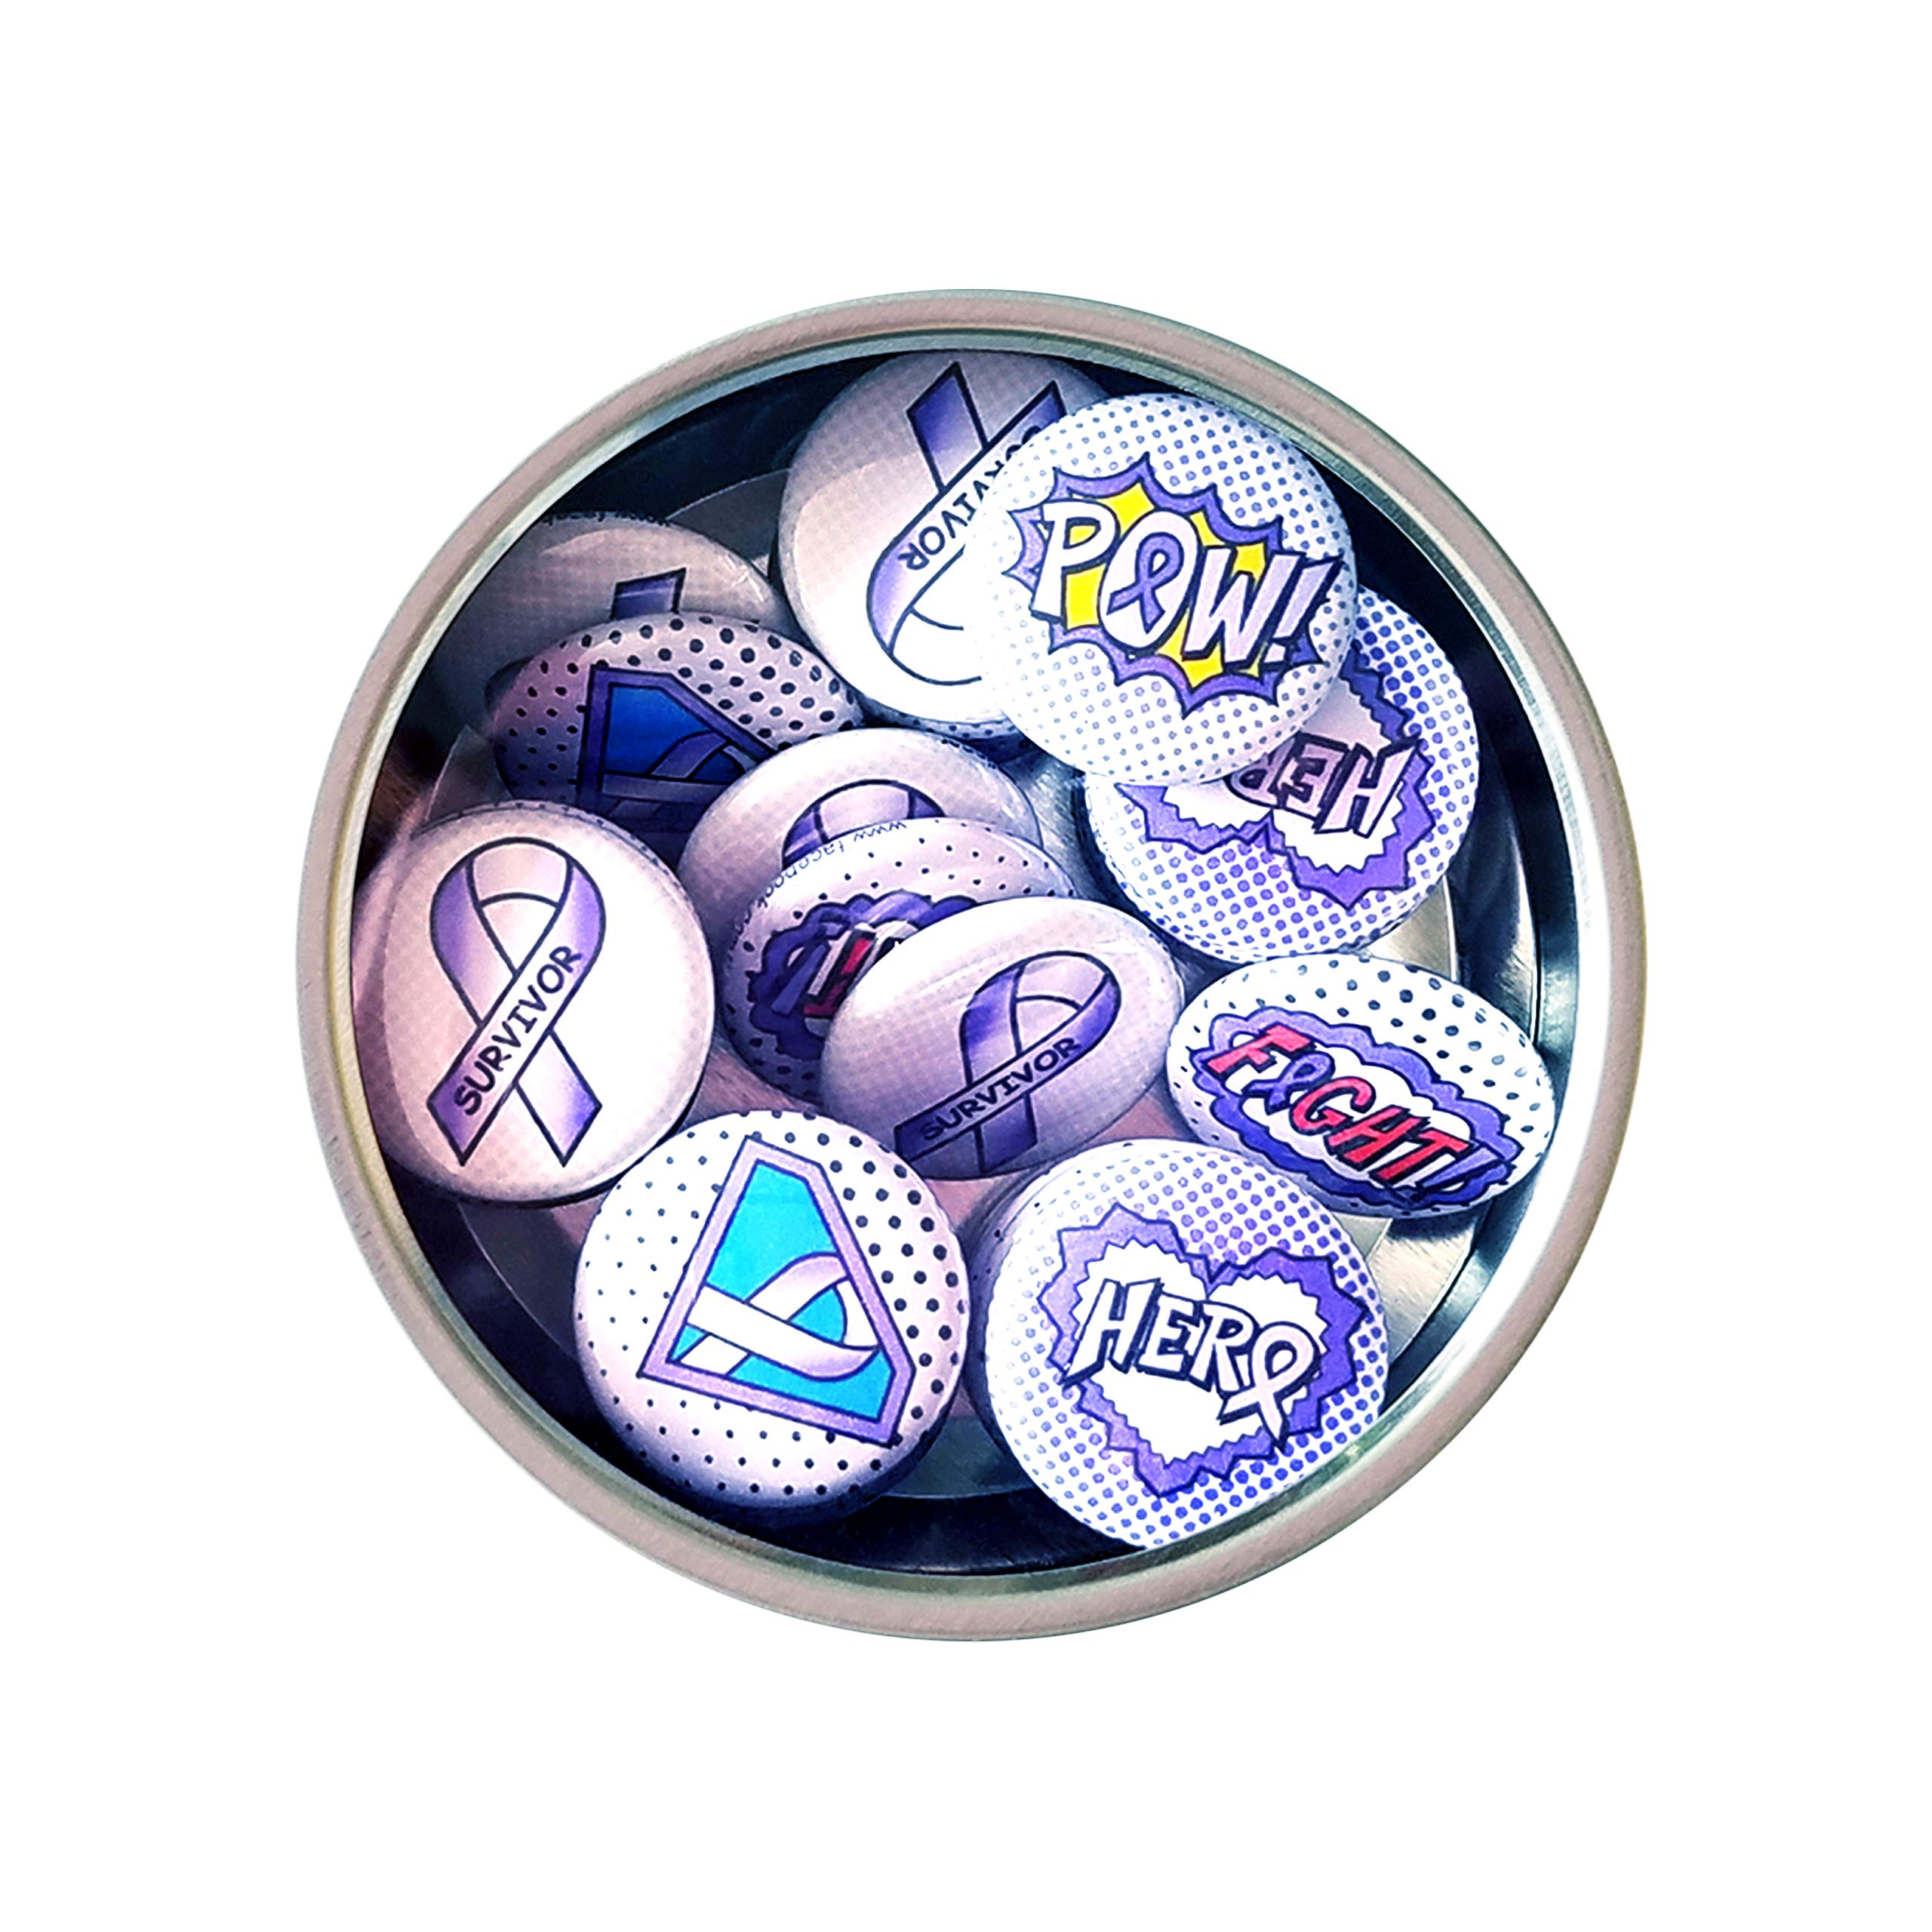 Superhero Awareness Pins - LAVENDER. All Cancer Awareness, Craniosynostosis, Epilepsy, Gynecological Cancer, Hypokalemic Periodic Paralysis, Infantile Spasms, Rett Syndrome. (1'' Pins, 30 Piece Set) by ILMS (Image #3)